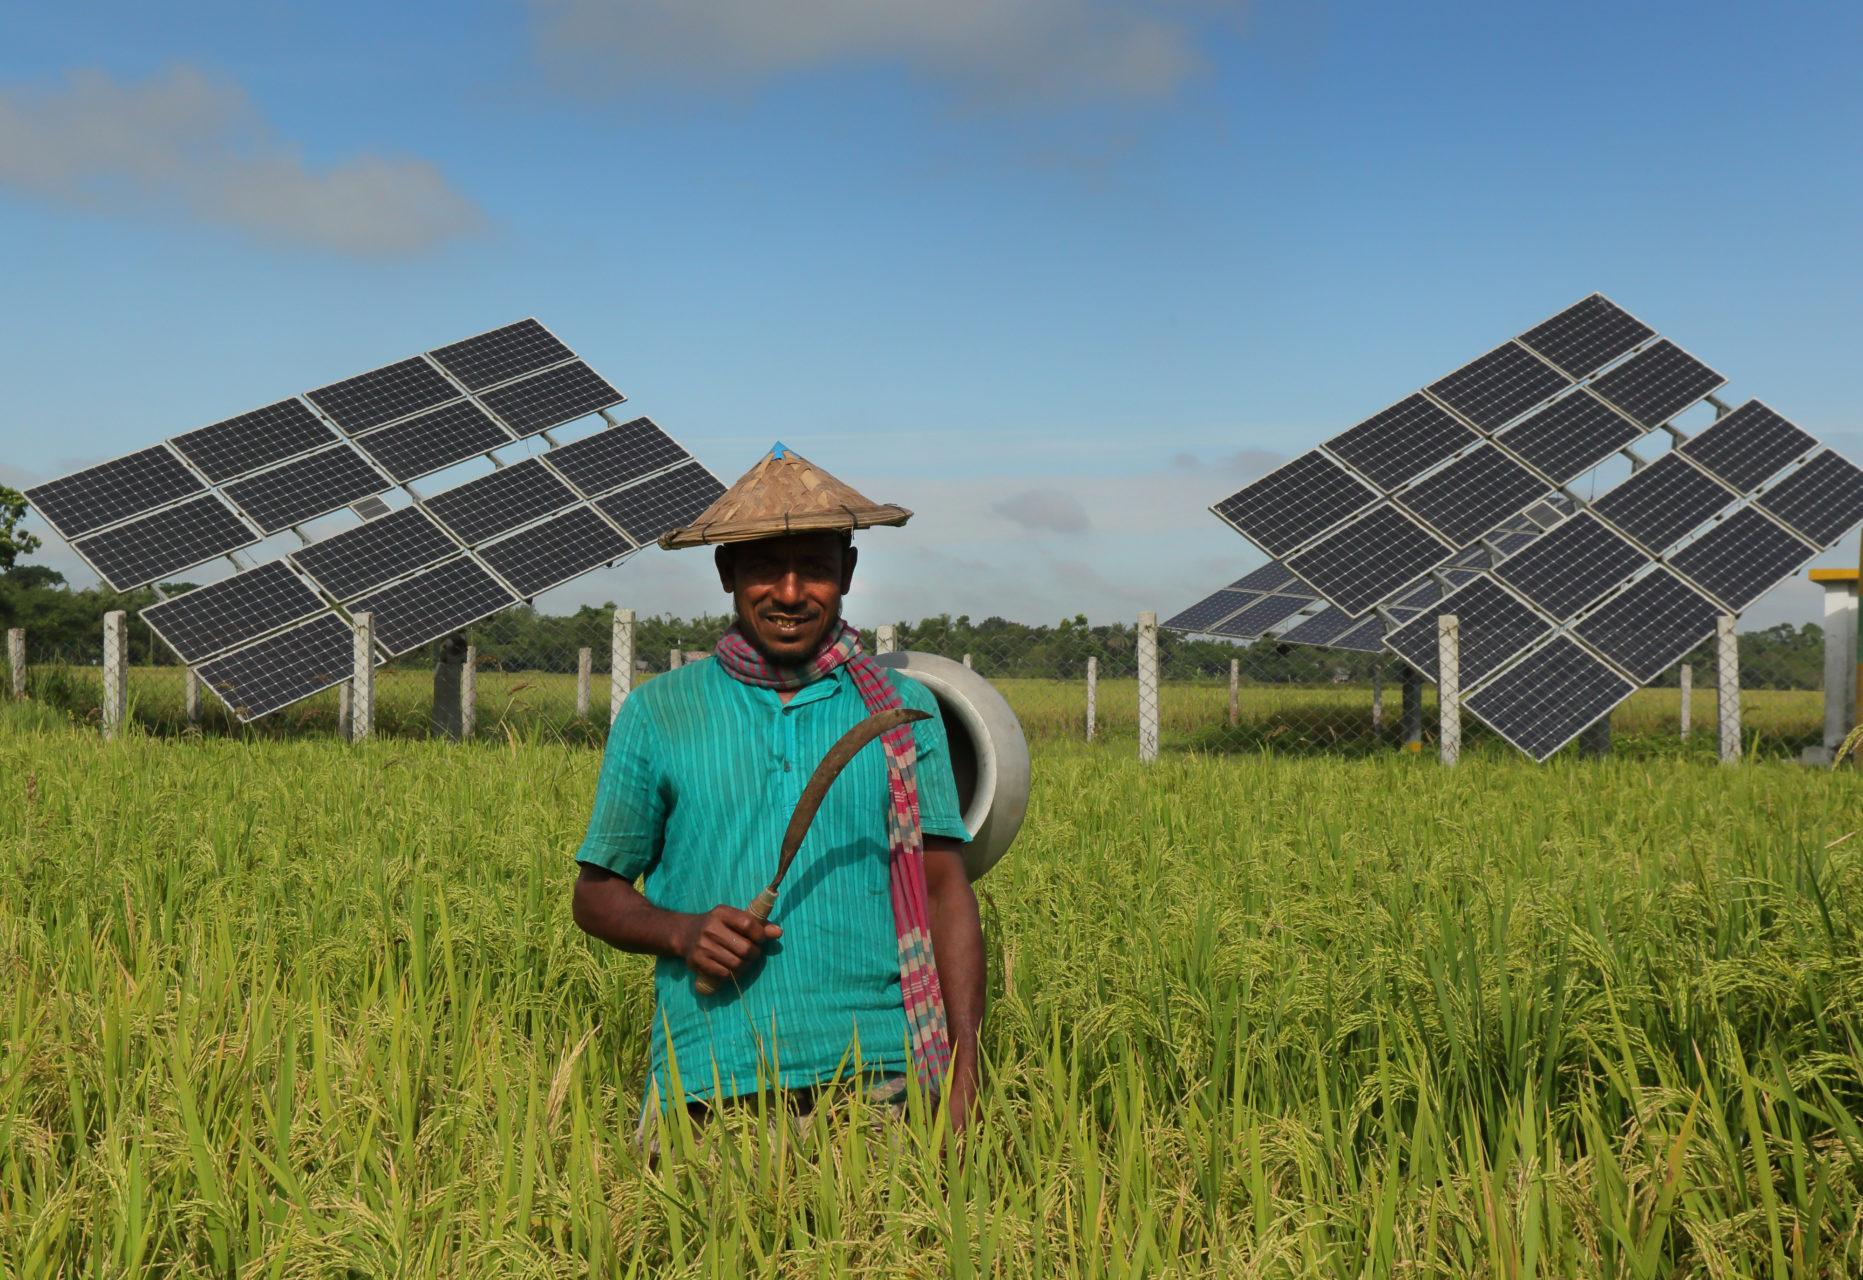 A man stands in a field in front of solar panels